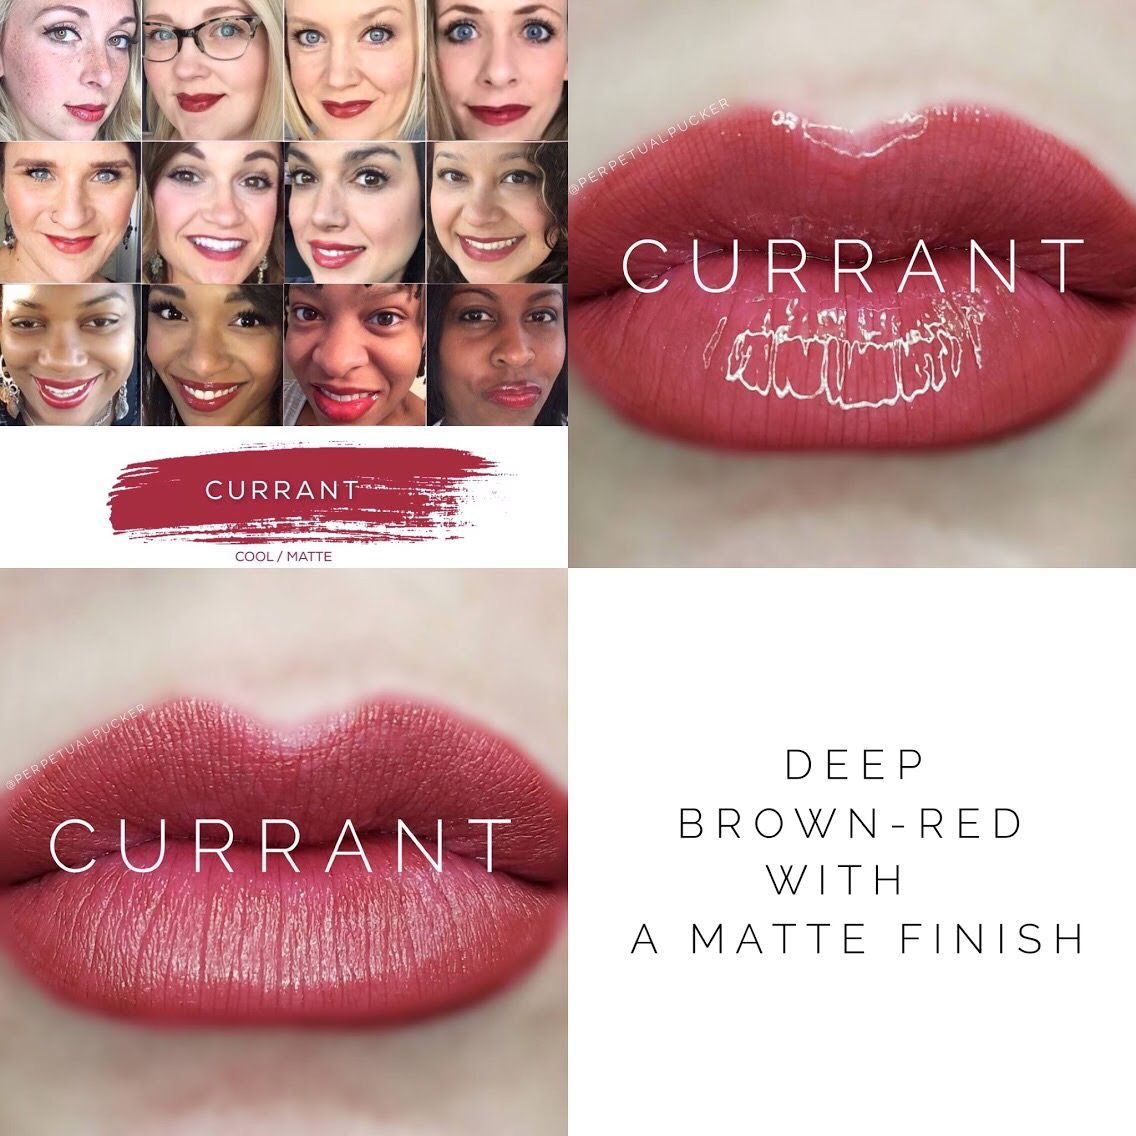 """Currant LipSense For more info: Follow me on Instagram: @northwestlipservice   Email for orders: jennifer.teitzel@yahoo.com Distributor ID: 235141  Find """"Northwest Lip Service"""" on Facebook. Smudge Proof, Water proof, Kiss Proof, Gluten Free, Anti-Aging, and Vegan friendly!!!"""